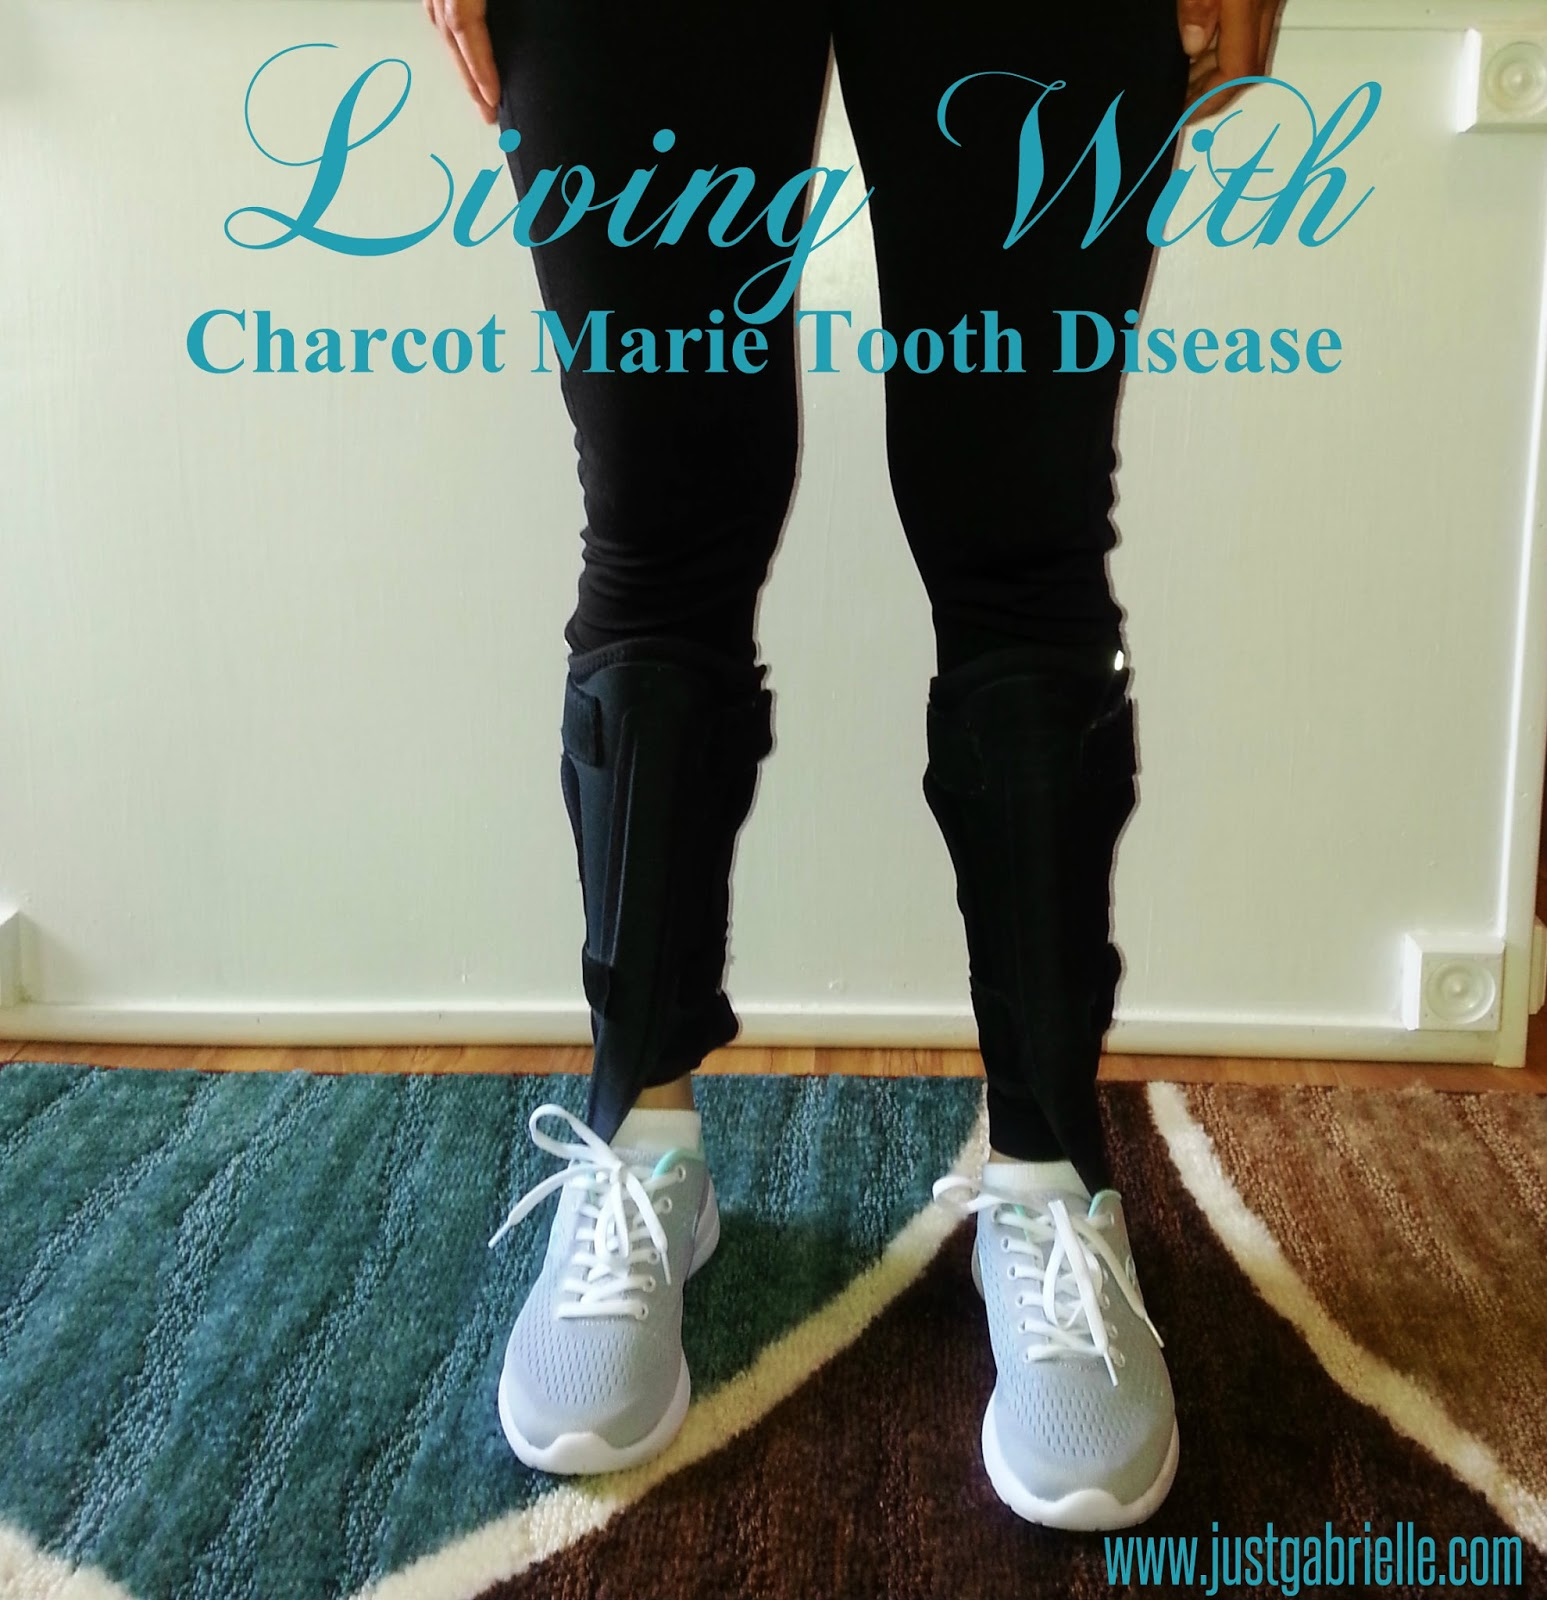 what is charcot marie tooth disease 601472 - charcot-marie-tooth disease, axonal, type 2d cmt2d - charcot-marie-tooth disease, neuronal, type 2d charcot-marie-tooth neuropathy, type 2d.